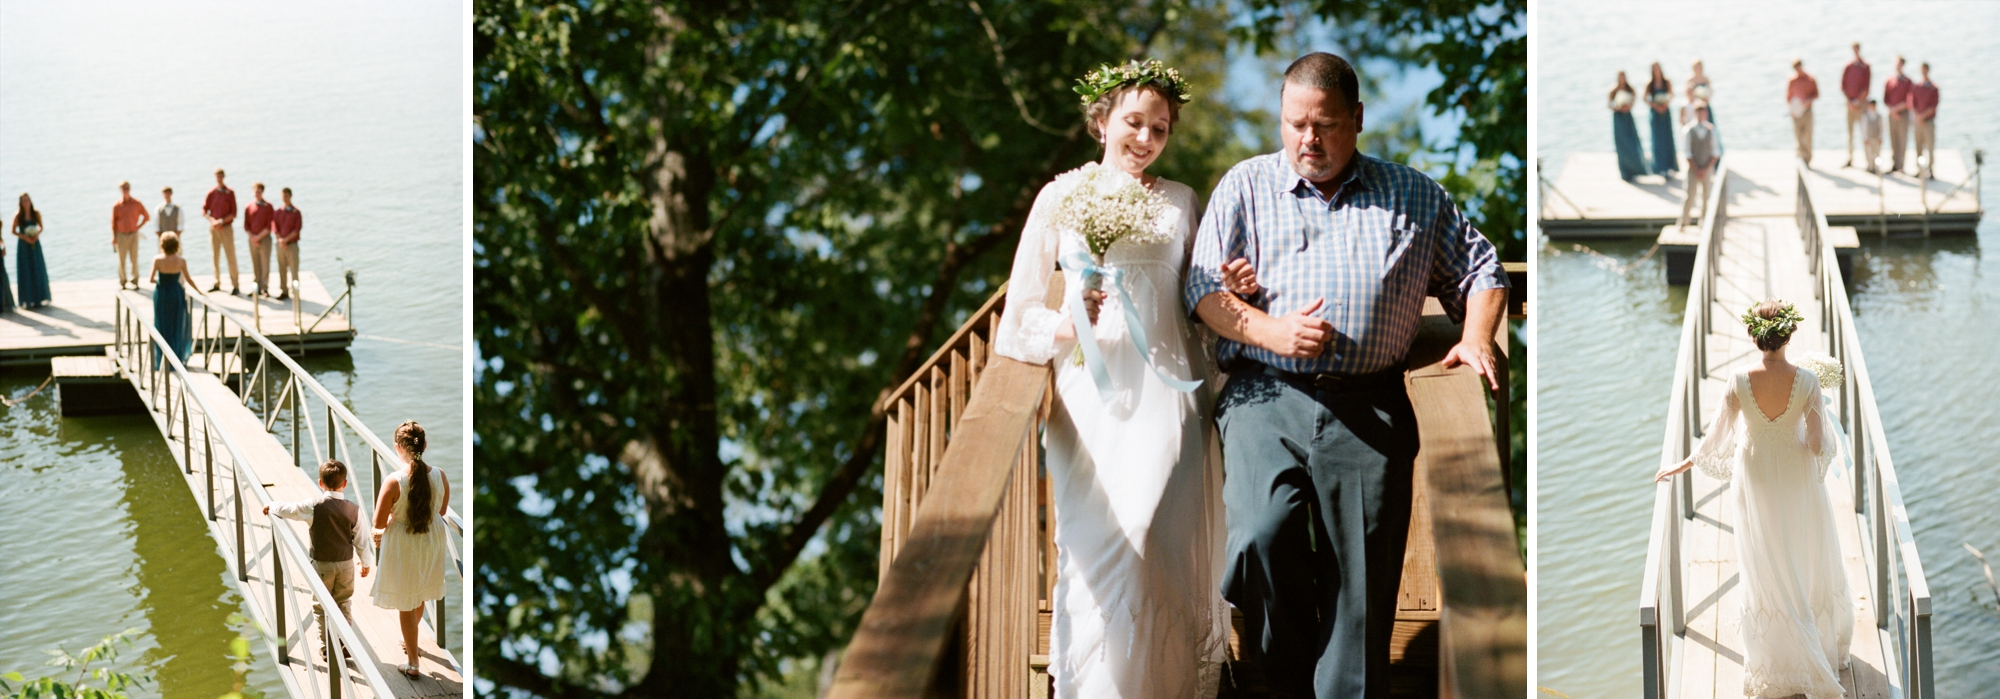 smith lake wedding_0047